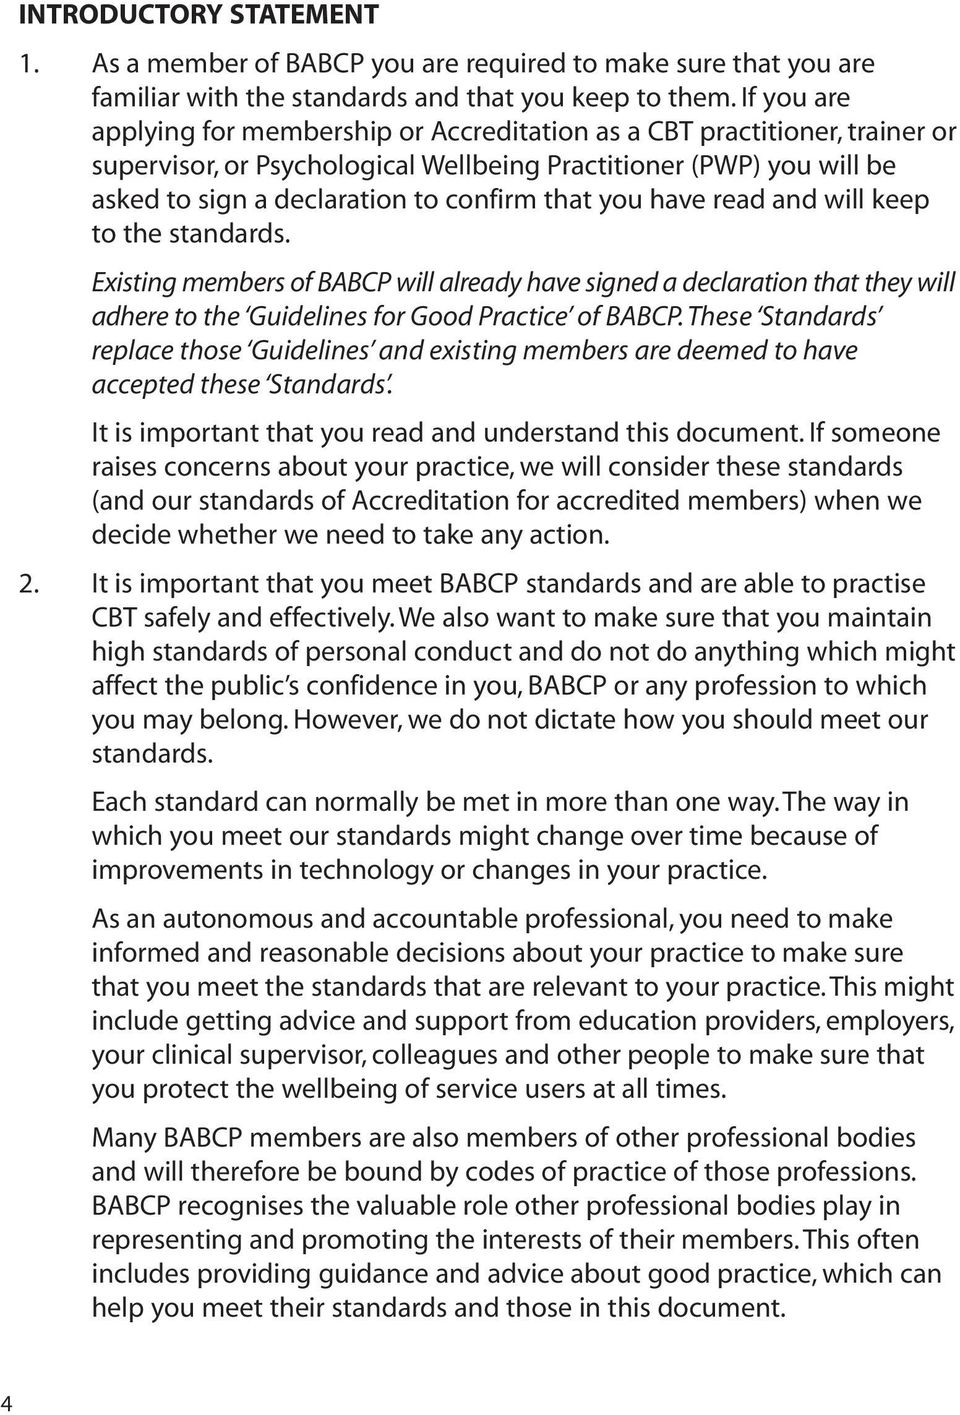 you have read and will keep to the standards. Existing members of BABCP will already have signed a declaration that they will adhere to the Guidelines for Good Practice of BABCP.